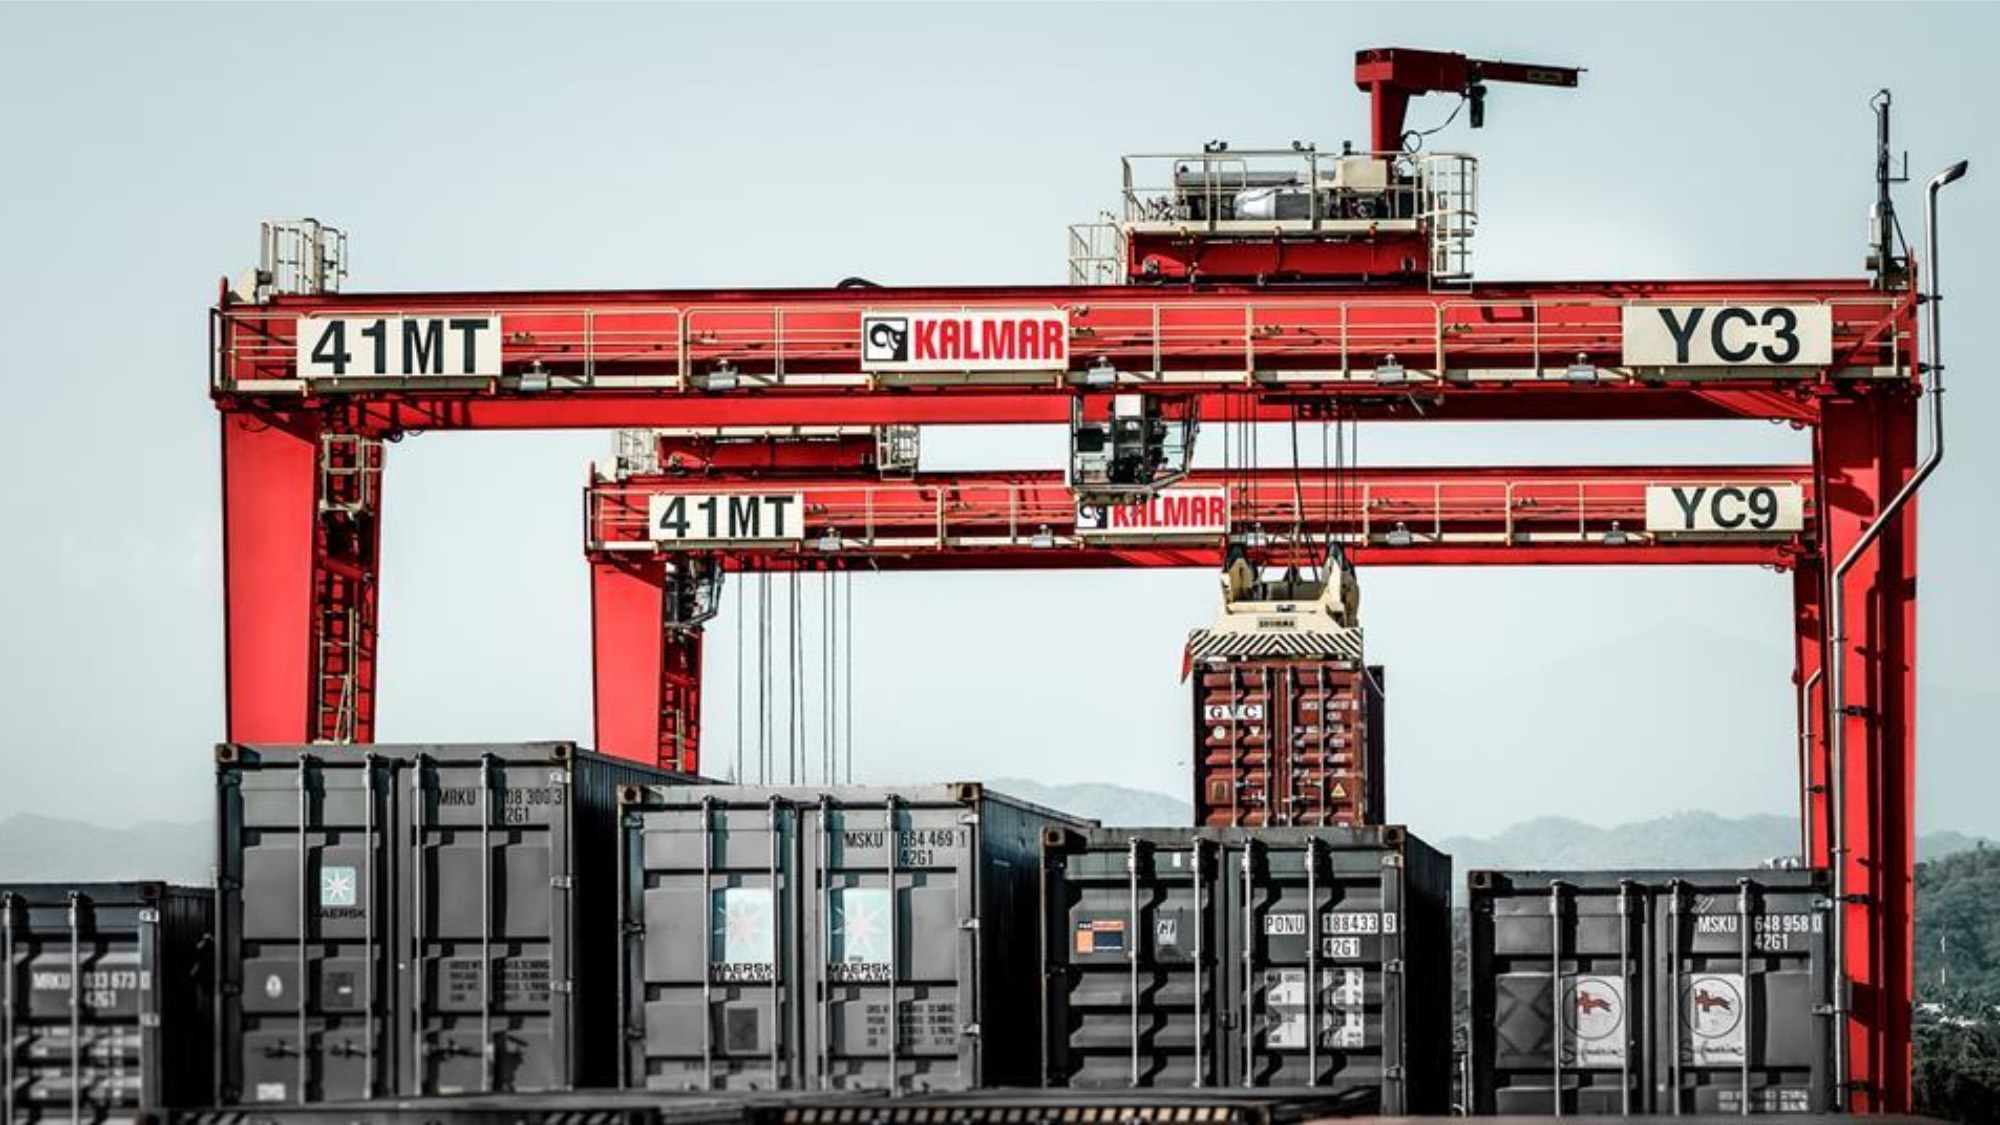 Cranes and containers